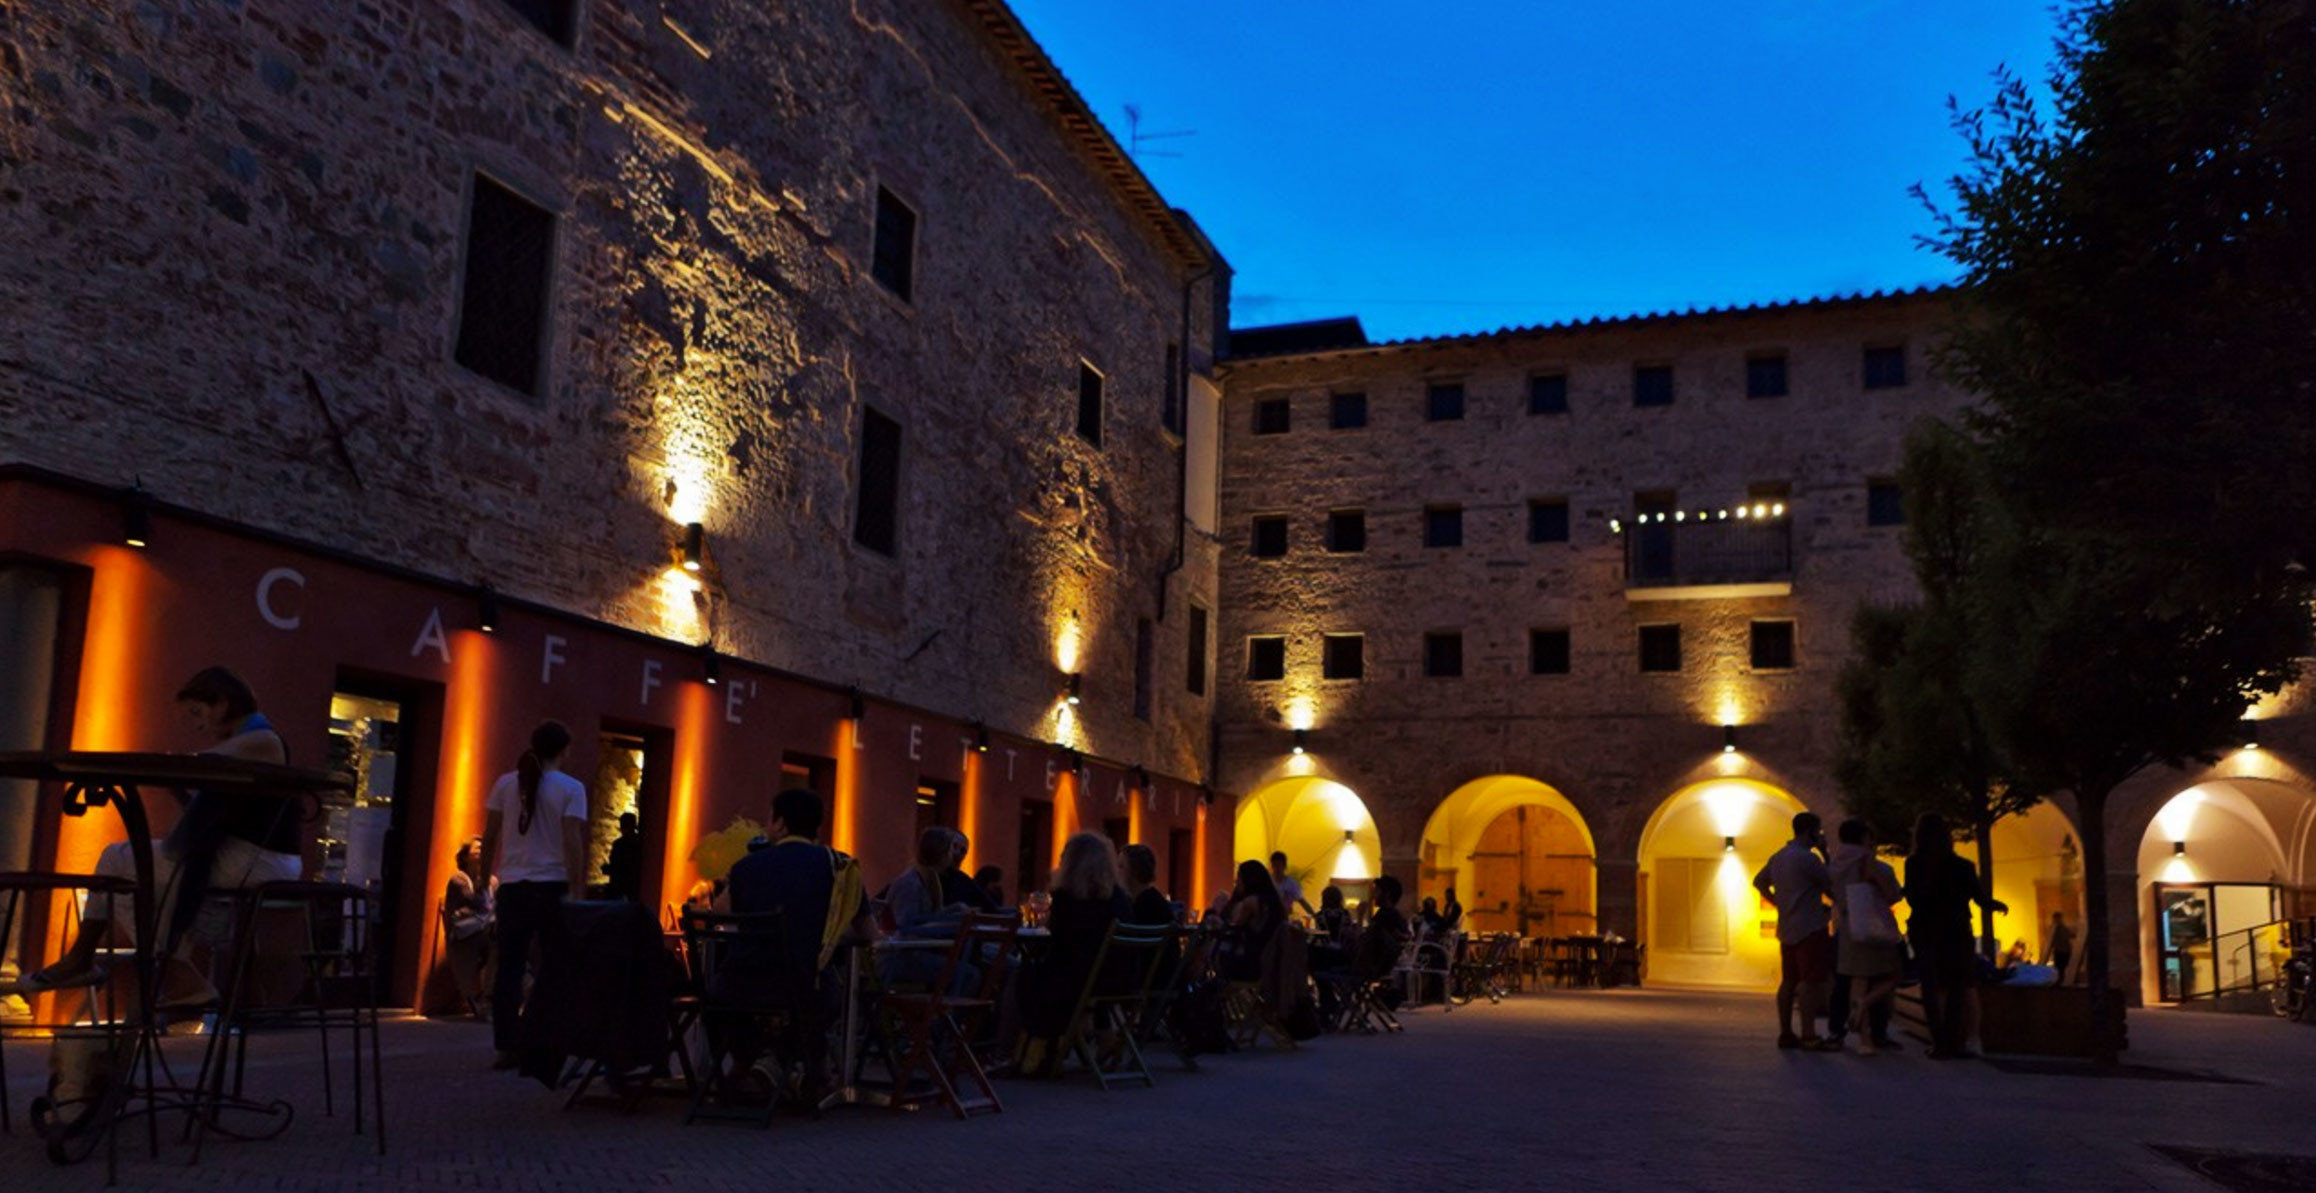 building Town night evening street Downtown town square plaza ancient history